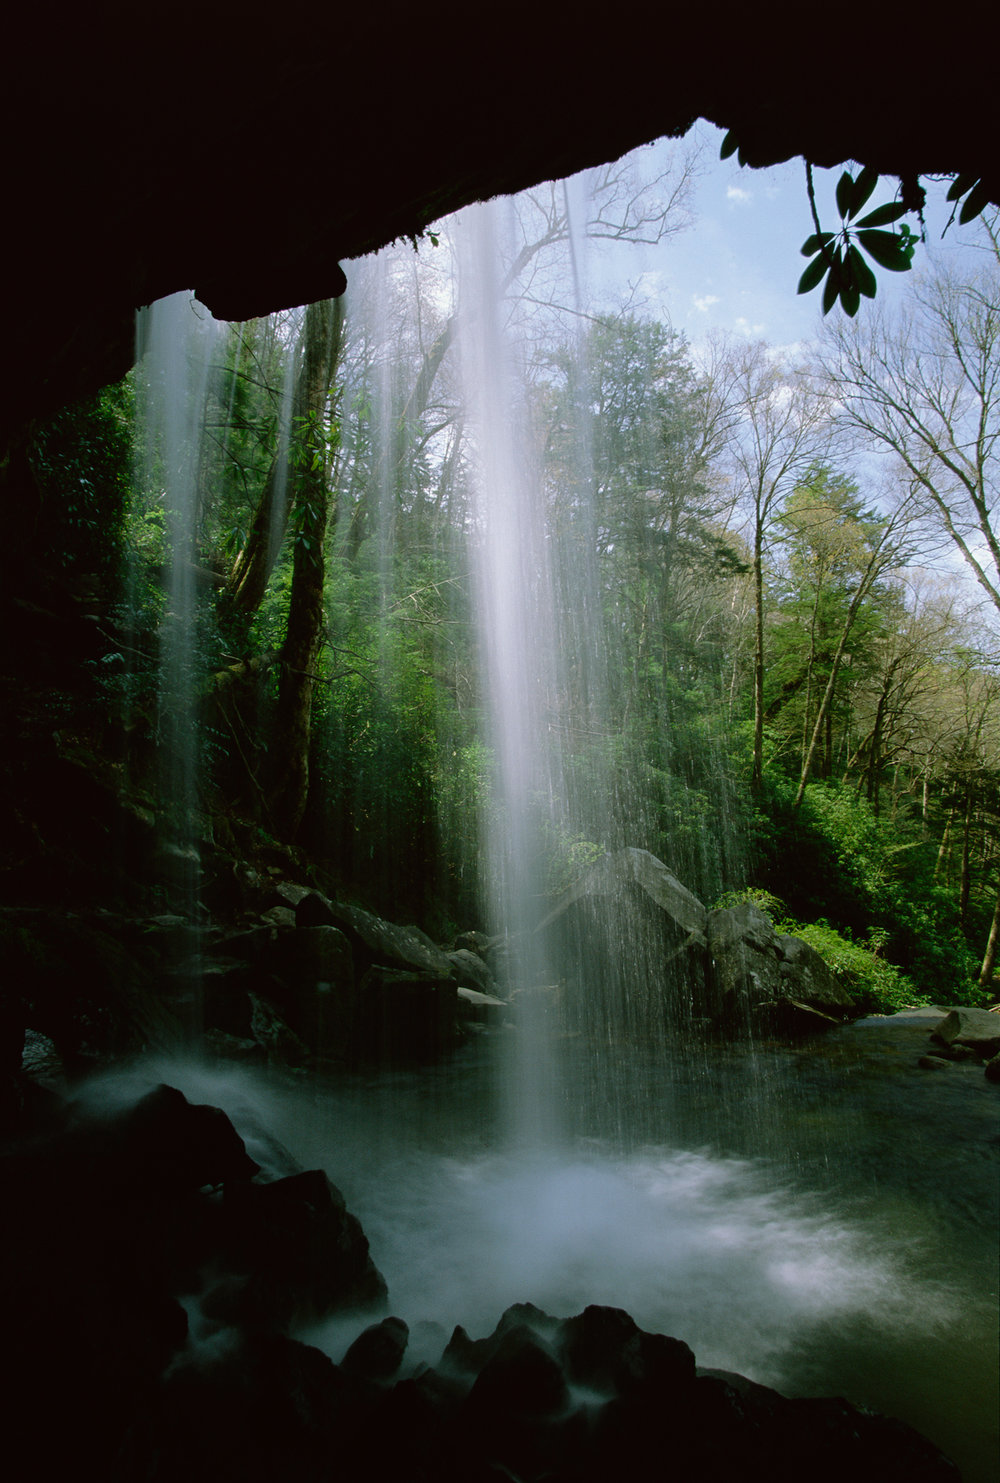 One of the most visited waterfalls in the Smoky Mountains, Grotto Falls is located up the Trillium Gap Trail near Gatlinburg, Tennessee.  Trillium Gap Trail, Tennessee